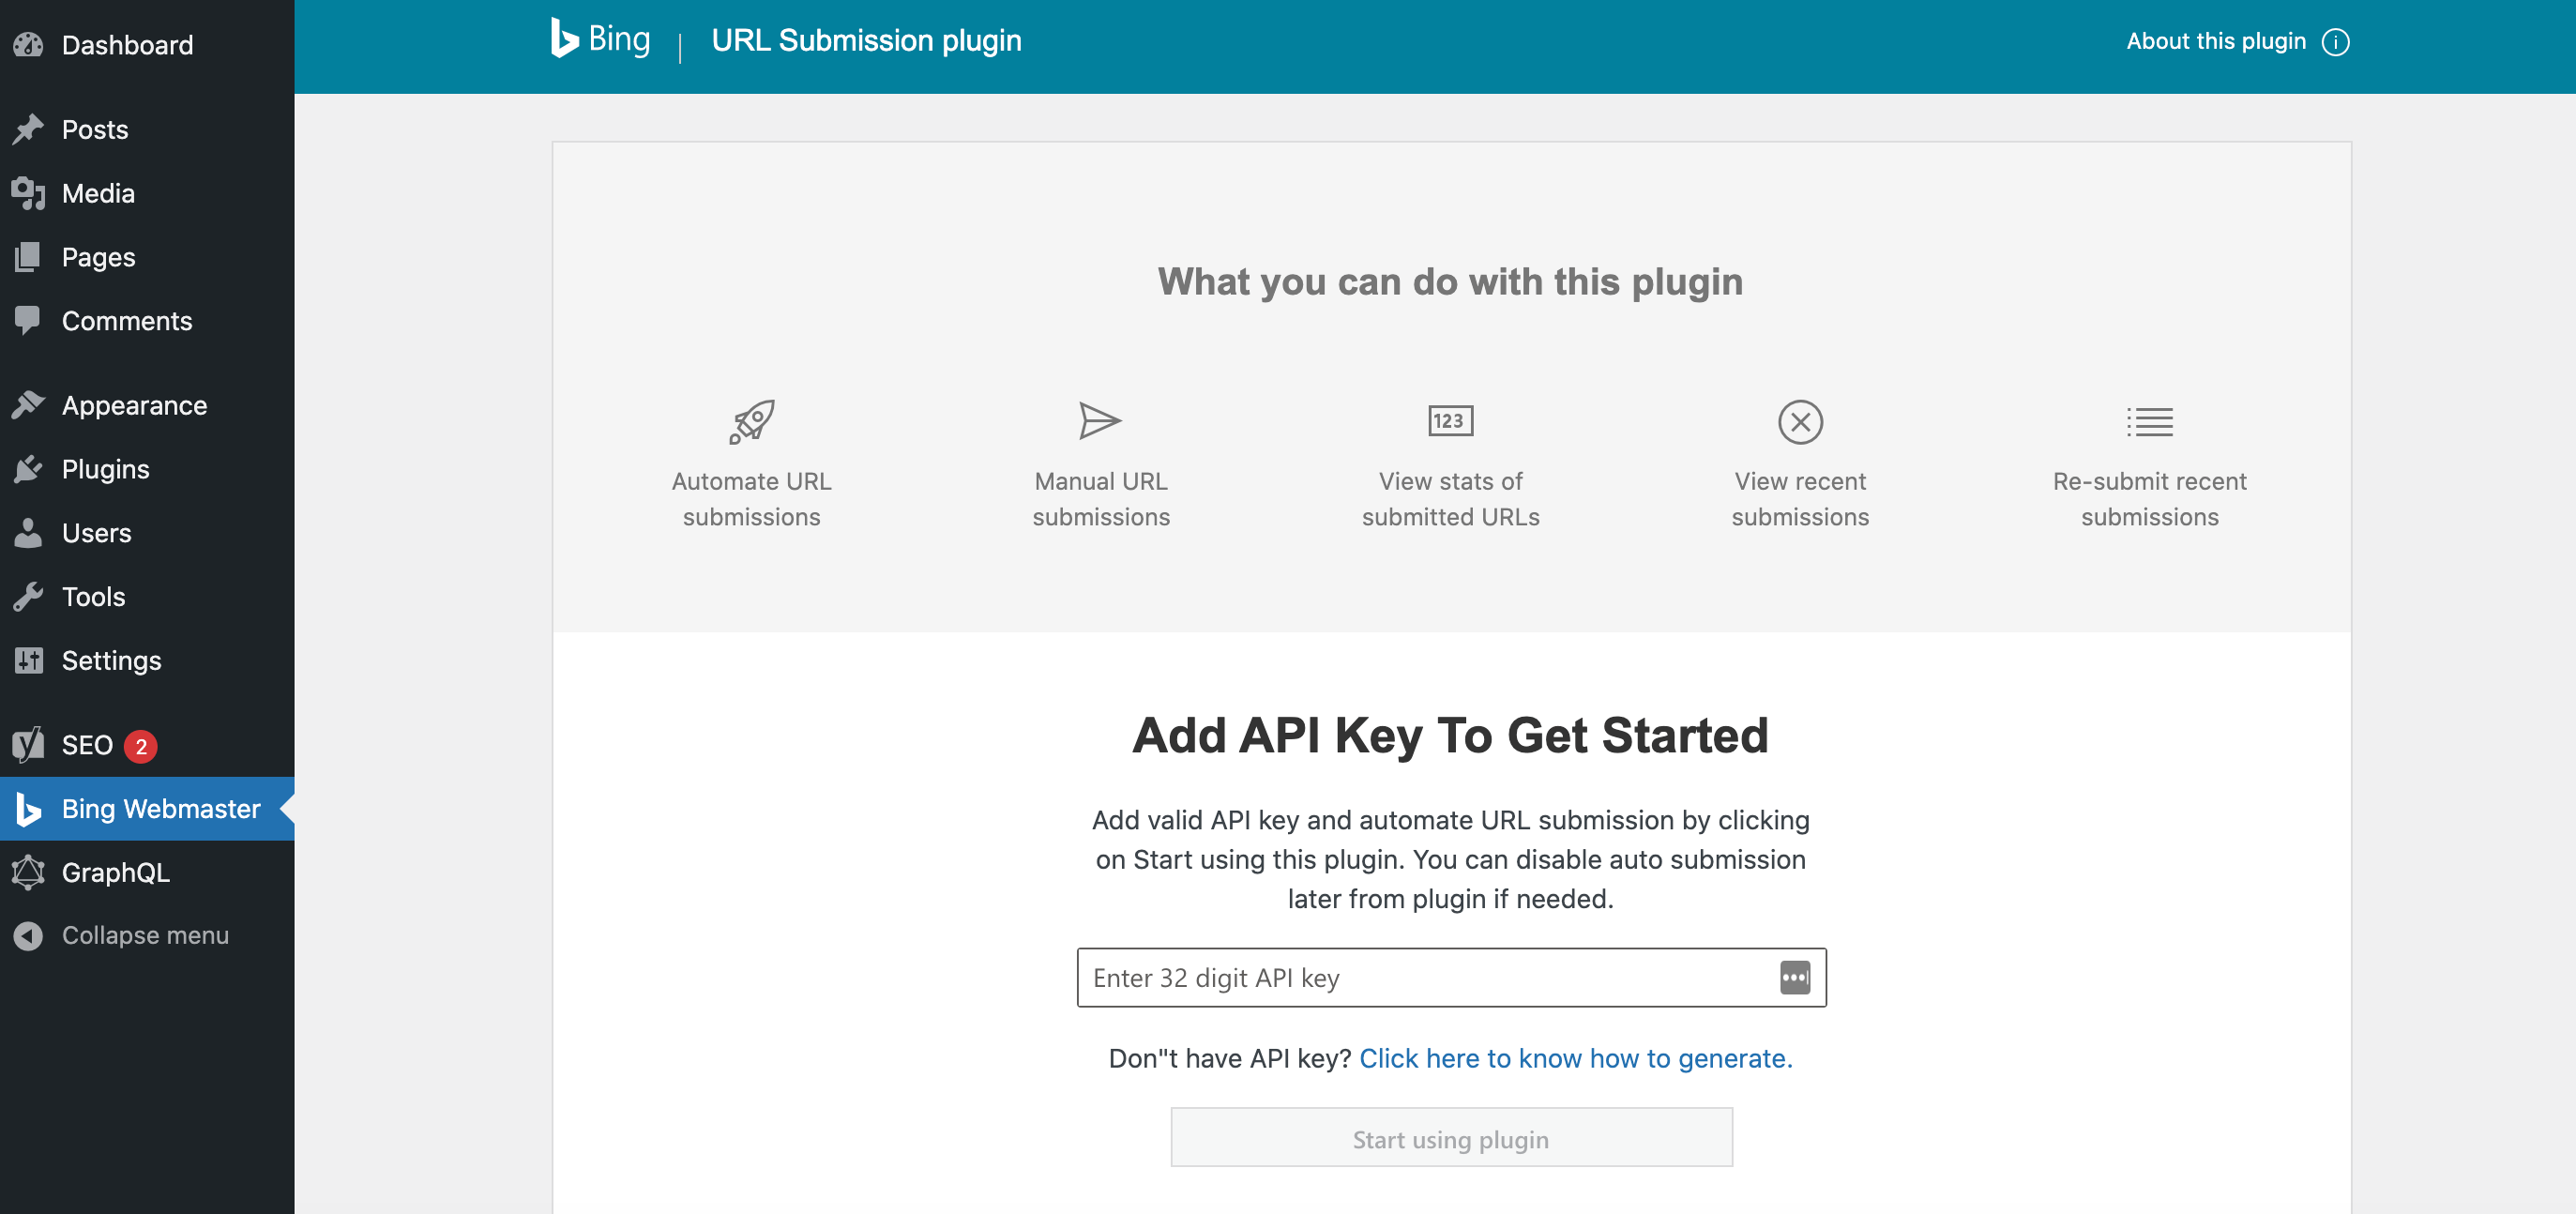 Adding an API key to the Bing URL Submission plugin.